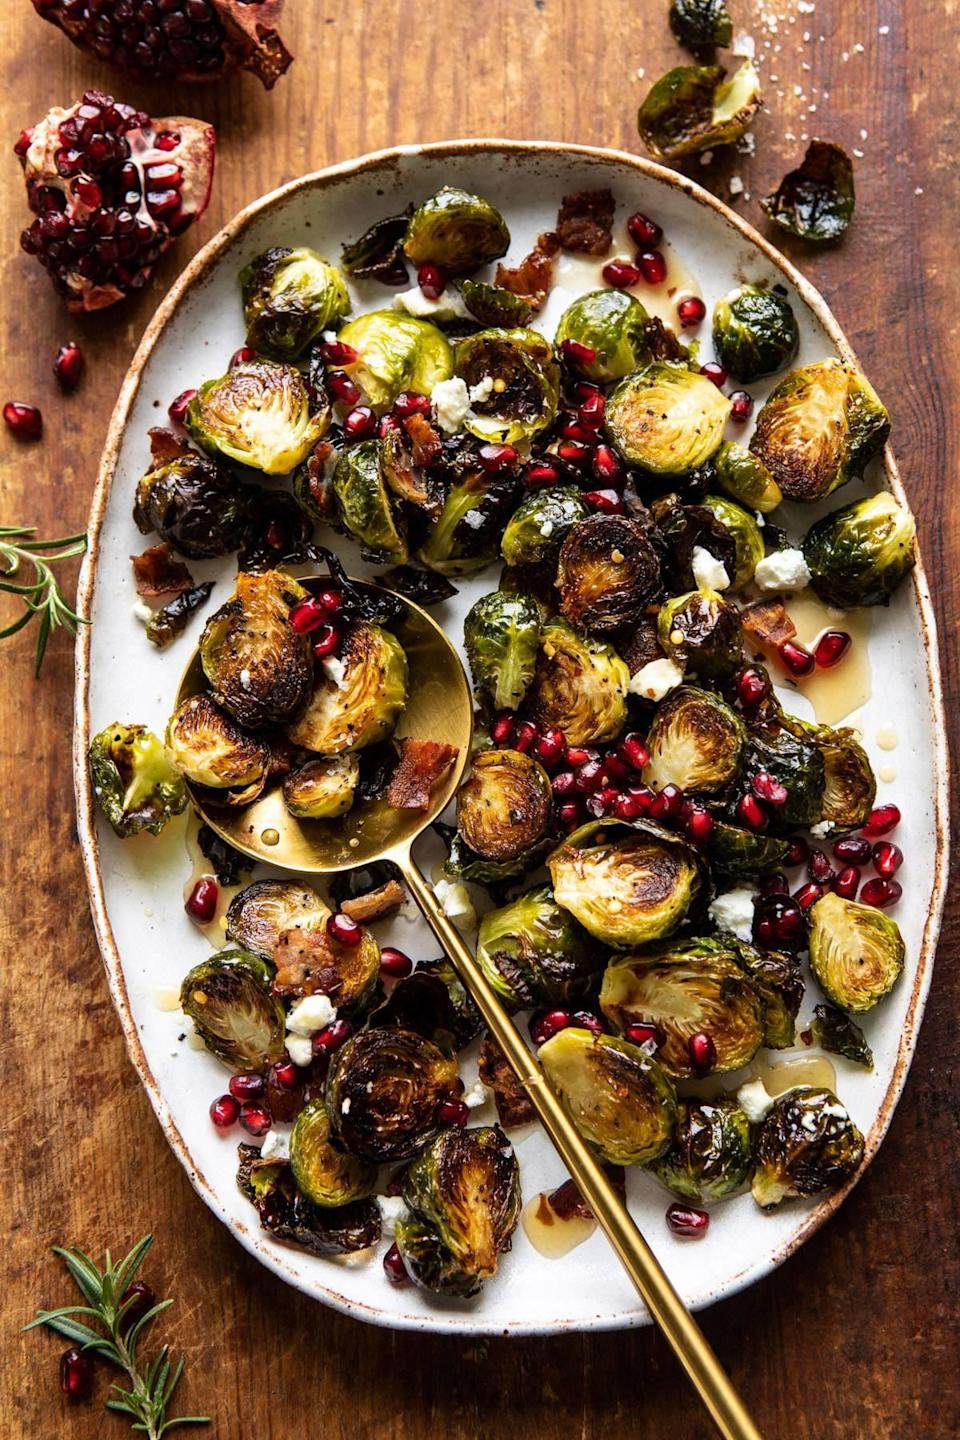 "<p>Fill your dinner table with warm veggies when you make this delightful dish. With a warm honey cider vinaigrette, it's effortlessly sweet and spicy all in one. Oh, and did we mention there are bits of bacon in it, too? <em>Yum</em>.</p> <p><strong>Get the recipe:</strong> <a href=""https://www.halfbakedharvest.com/roasted-bacon-brussels-sprouts/"" class=""link rapid-noclick-resp"" rel=""nofollow noopener"" target=""_blank"" data-ylk=""slk:roasted bacon Brussels sprouts with salted honey"">roasted bacon Brussels sprouts with salted honey</a></p>"